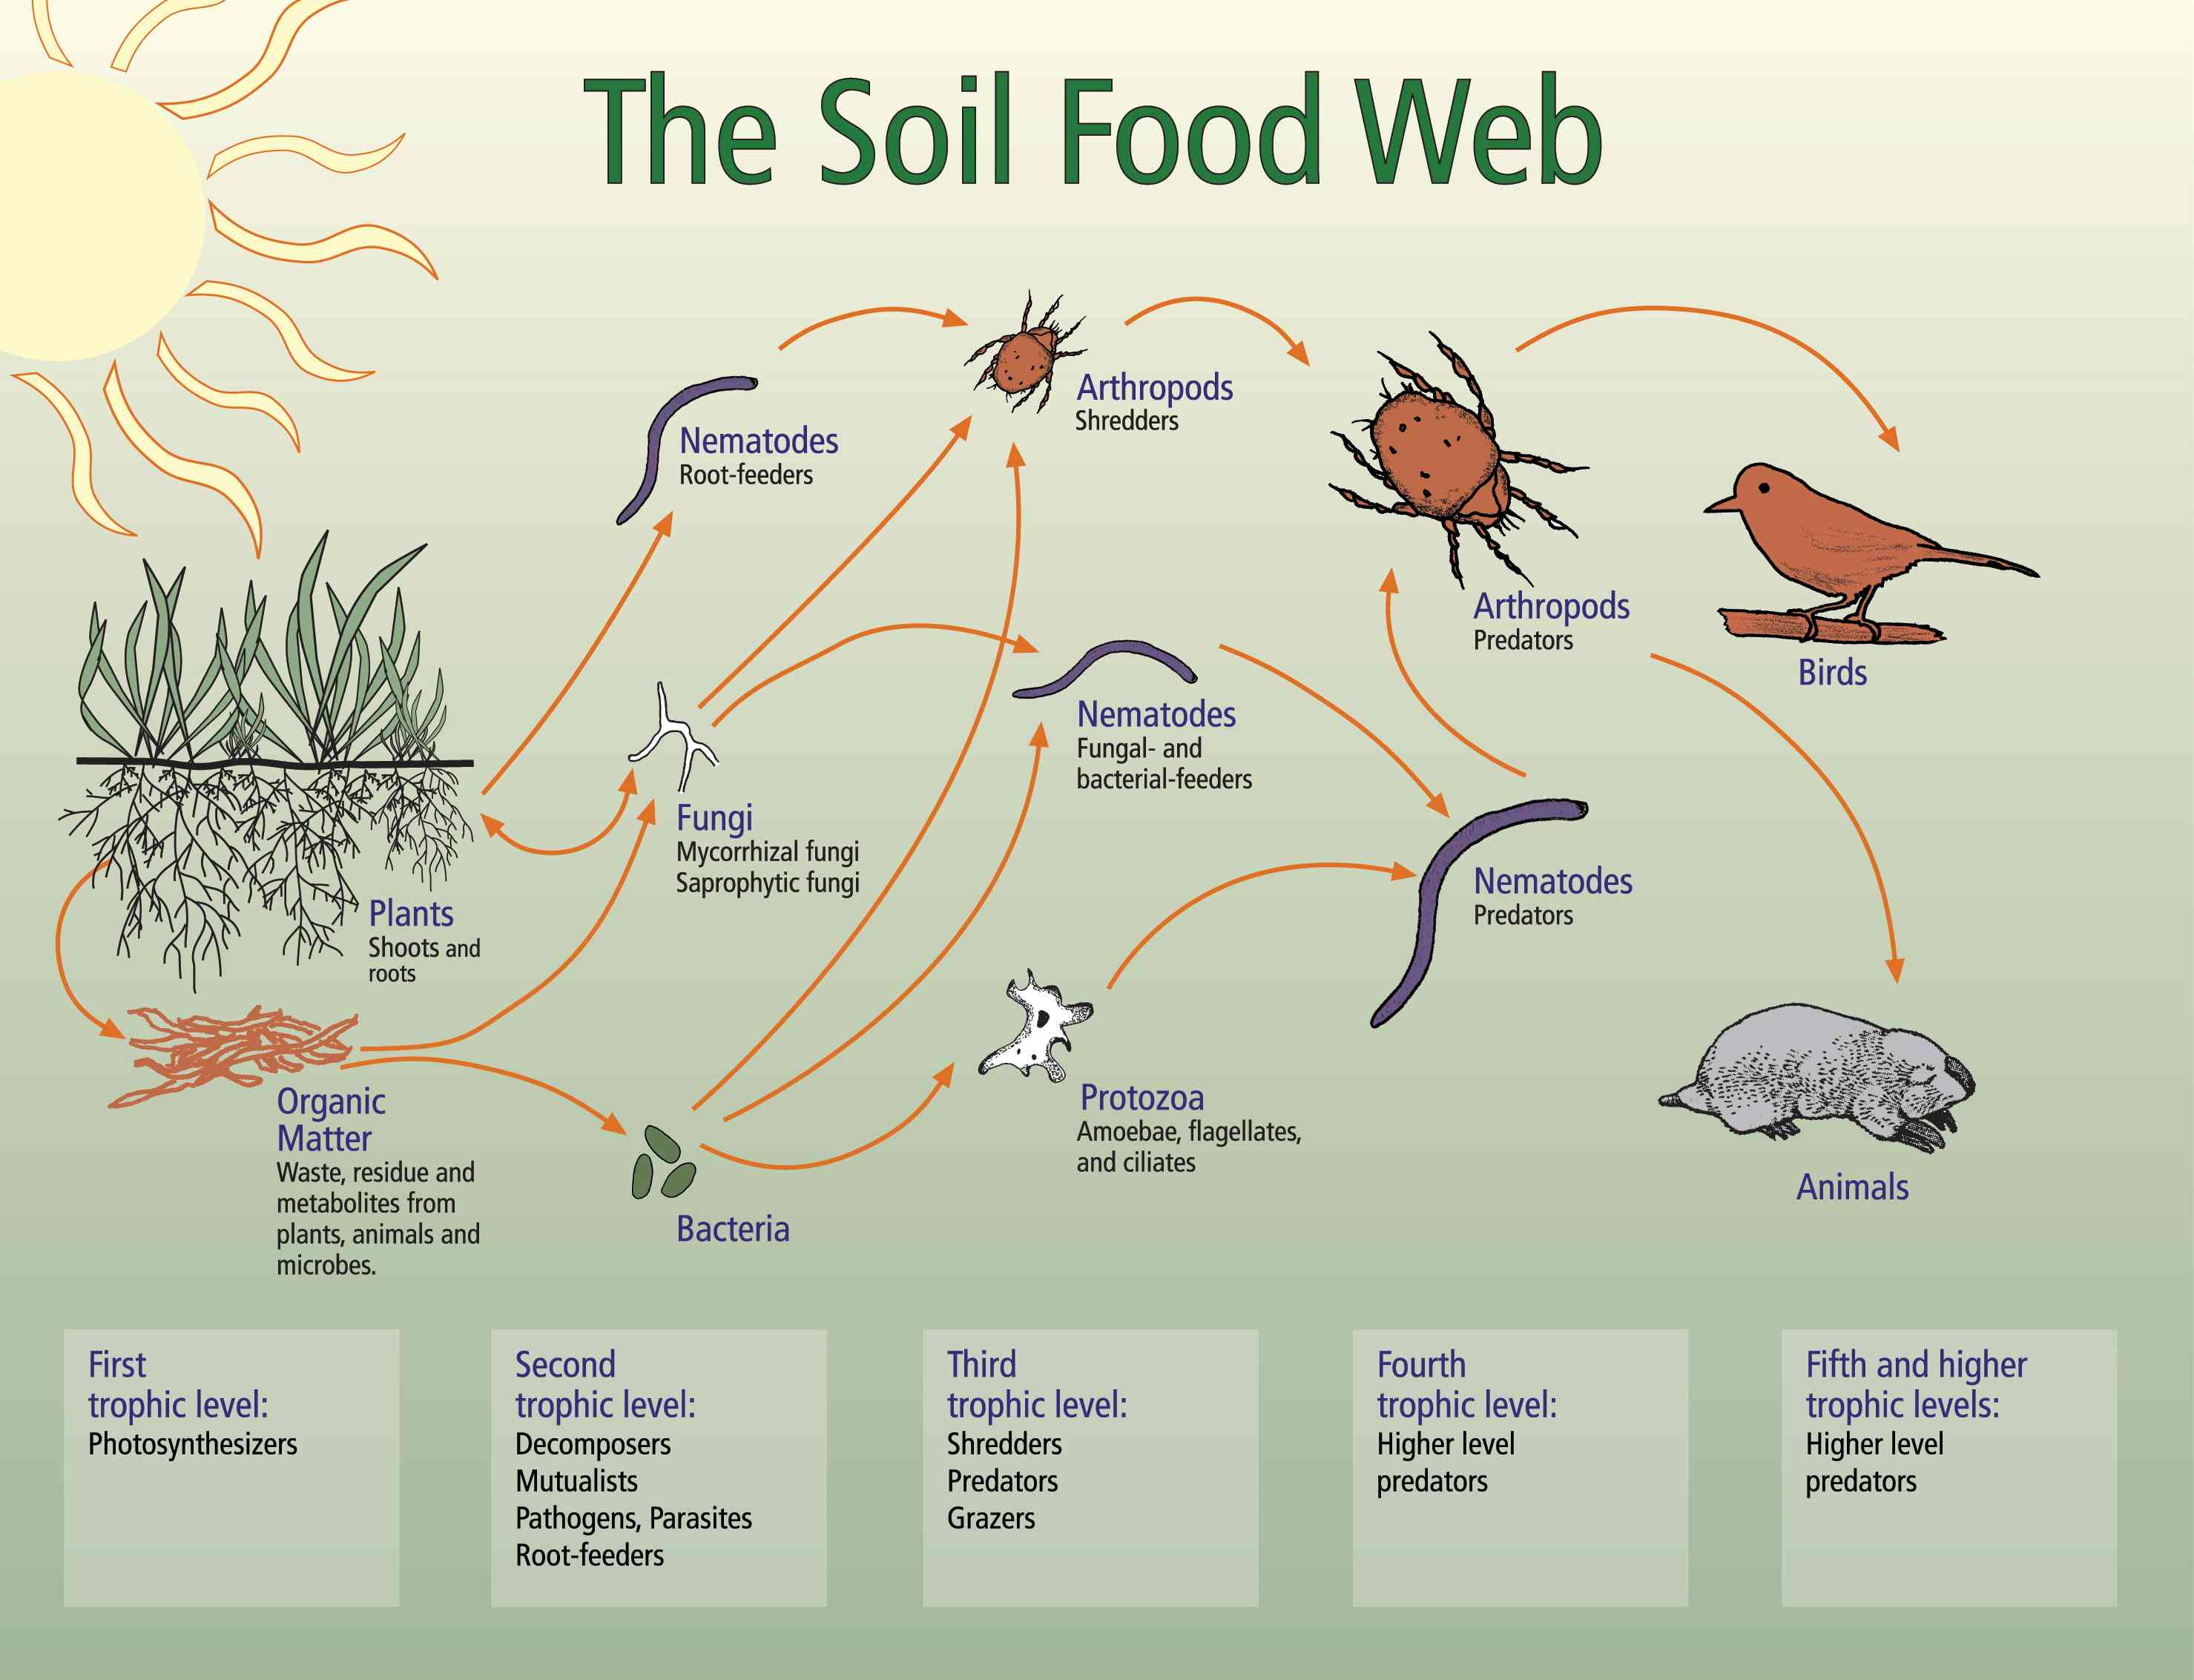 soil-food-web-map-copy.jpg